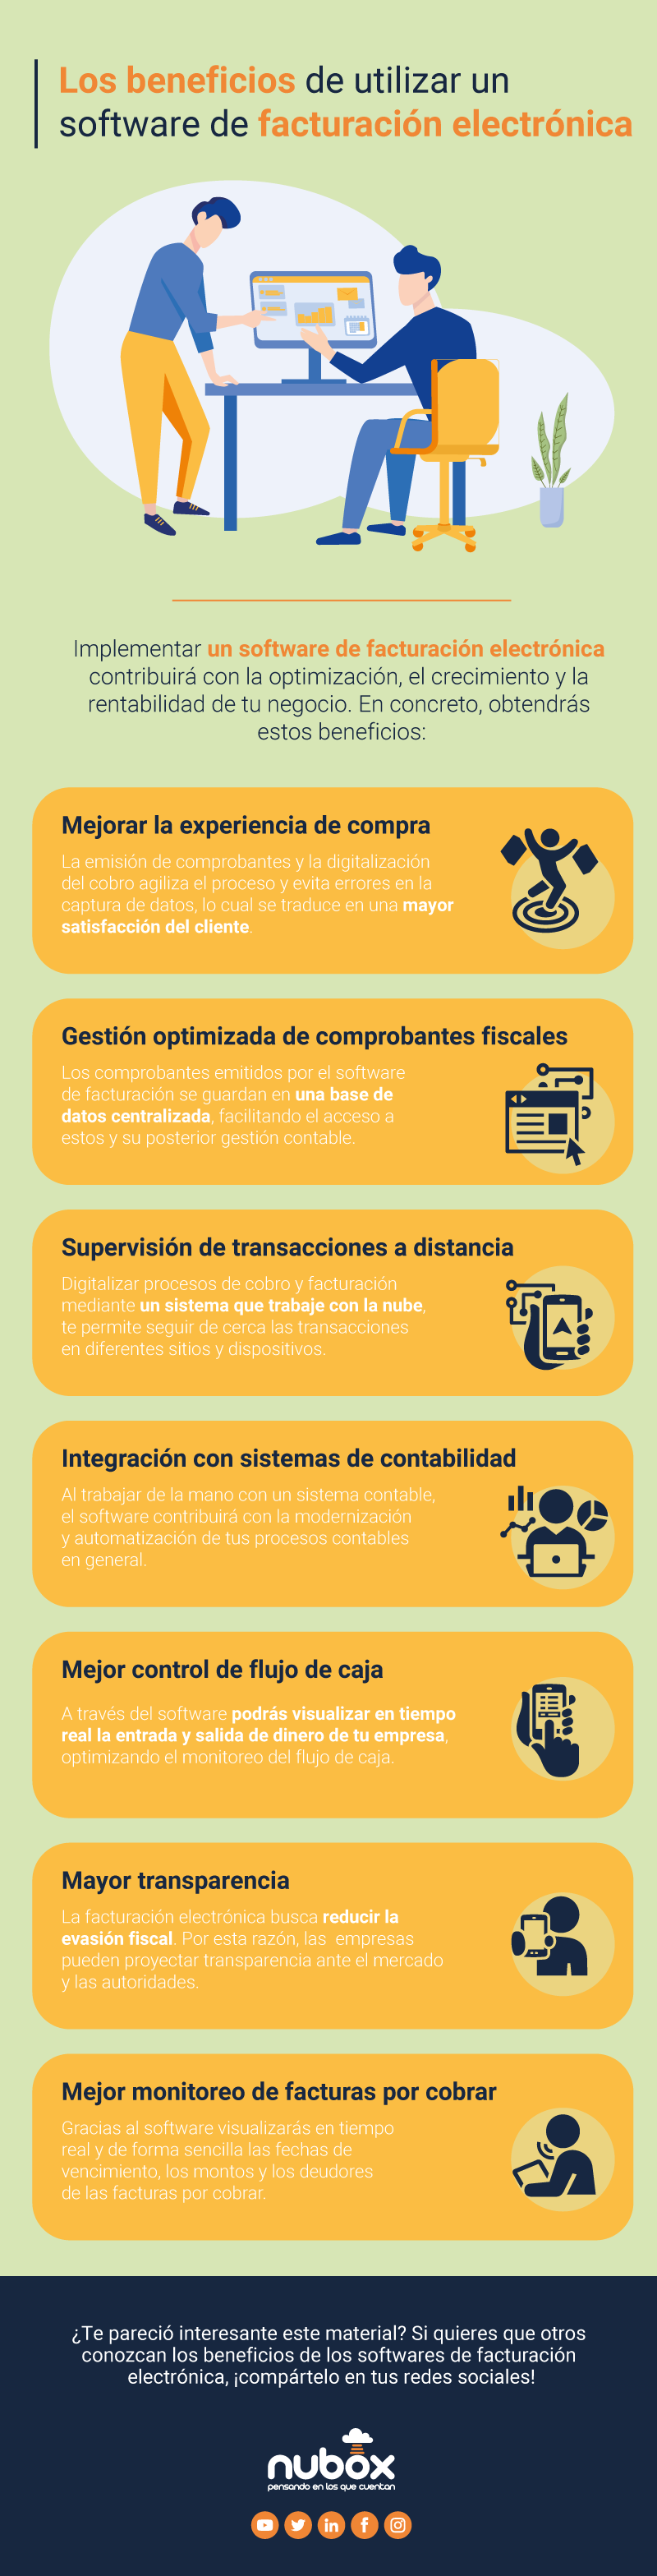 Los-beneficios-de-utilizar-un-software